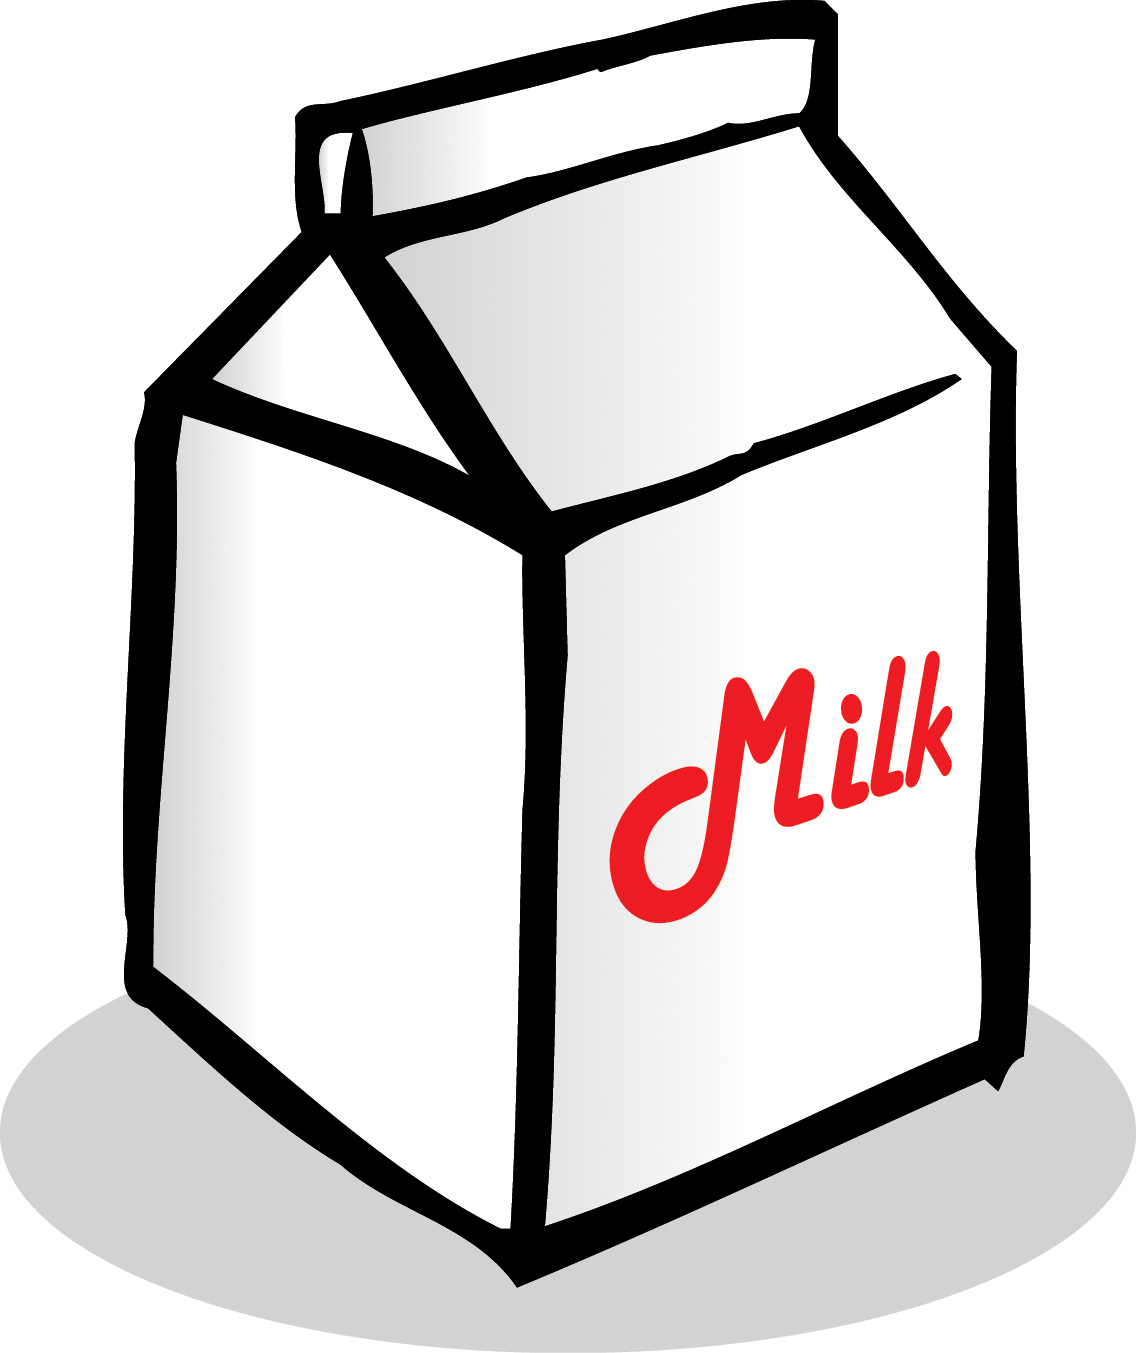 Free Picture Of Carton Of Milk, Download Free Clip Art, Free.